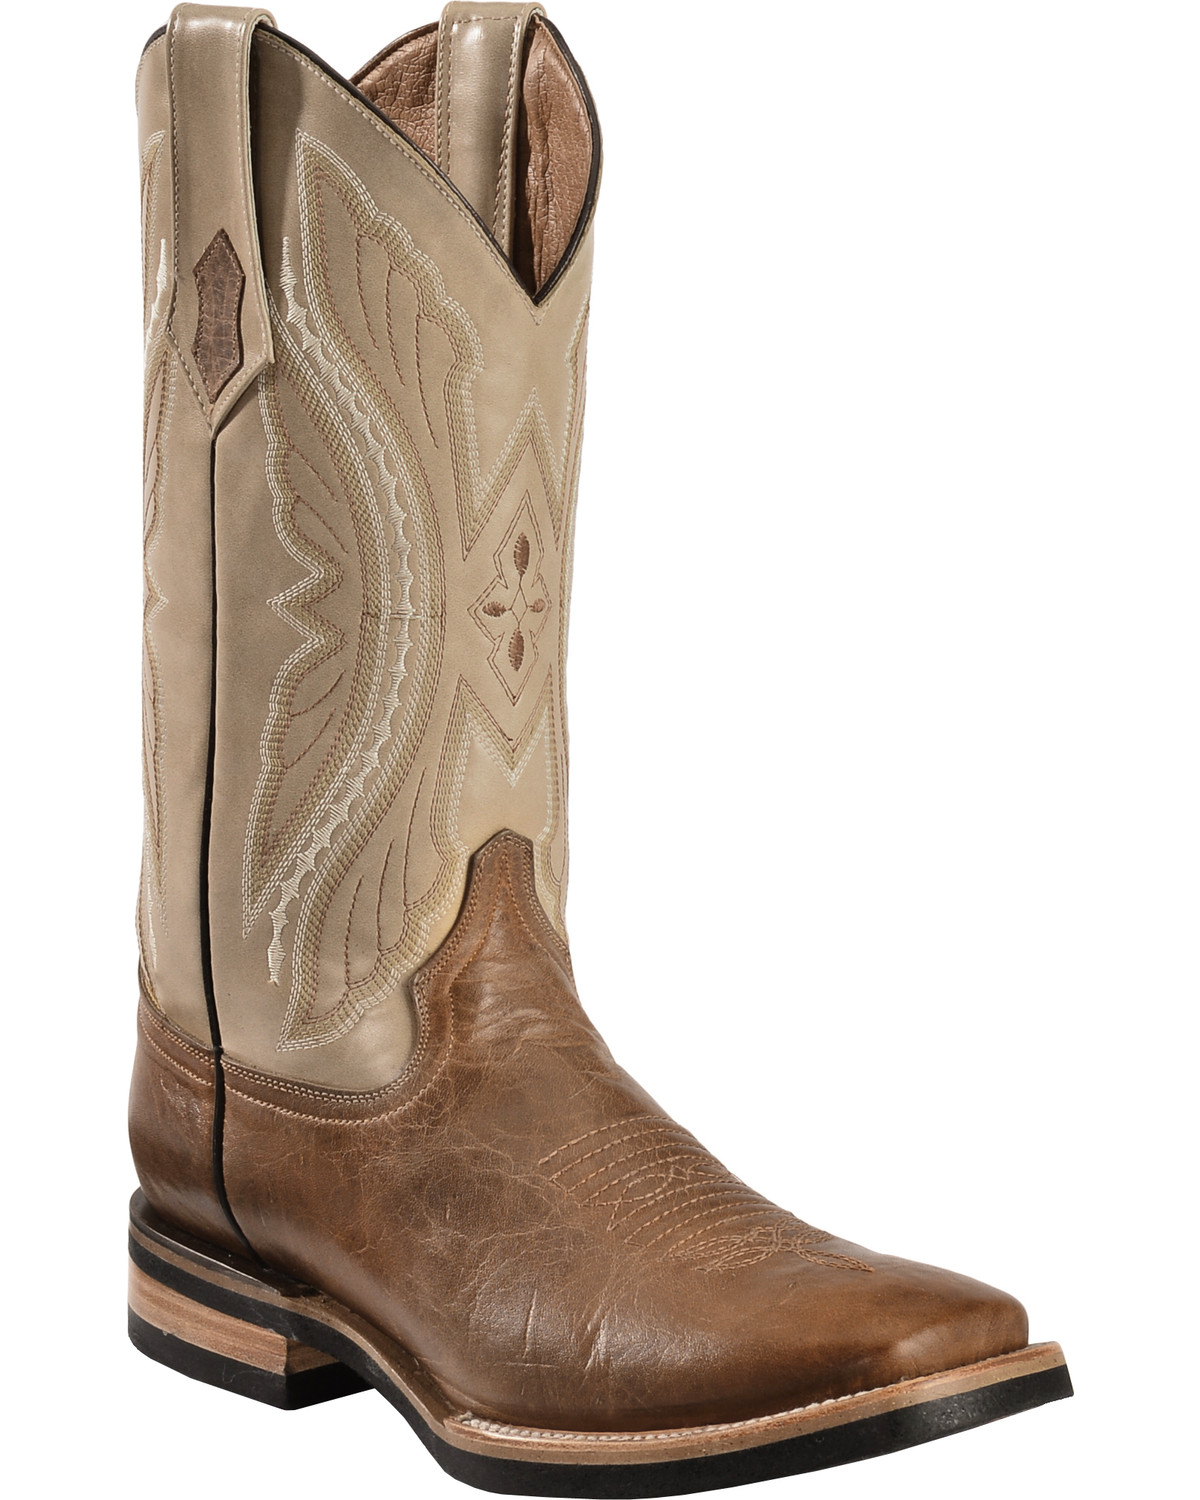 Ferrini Distressed Kangaroo Cowboy Boots Wide Square Toe